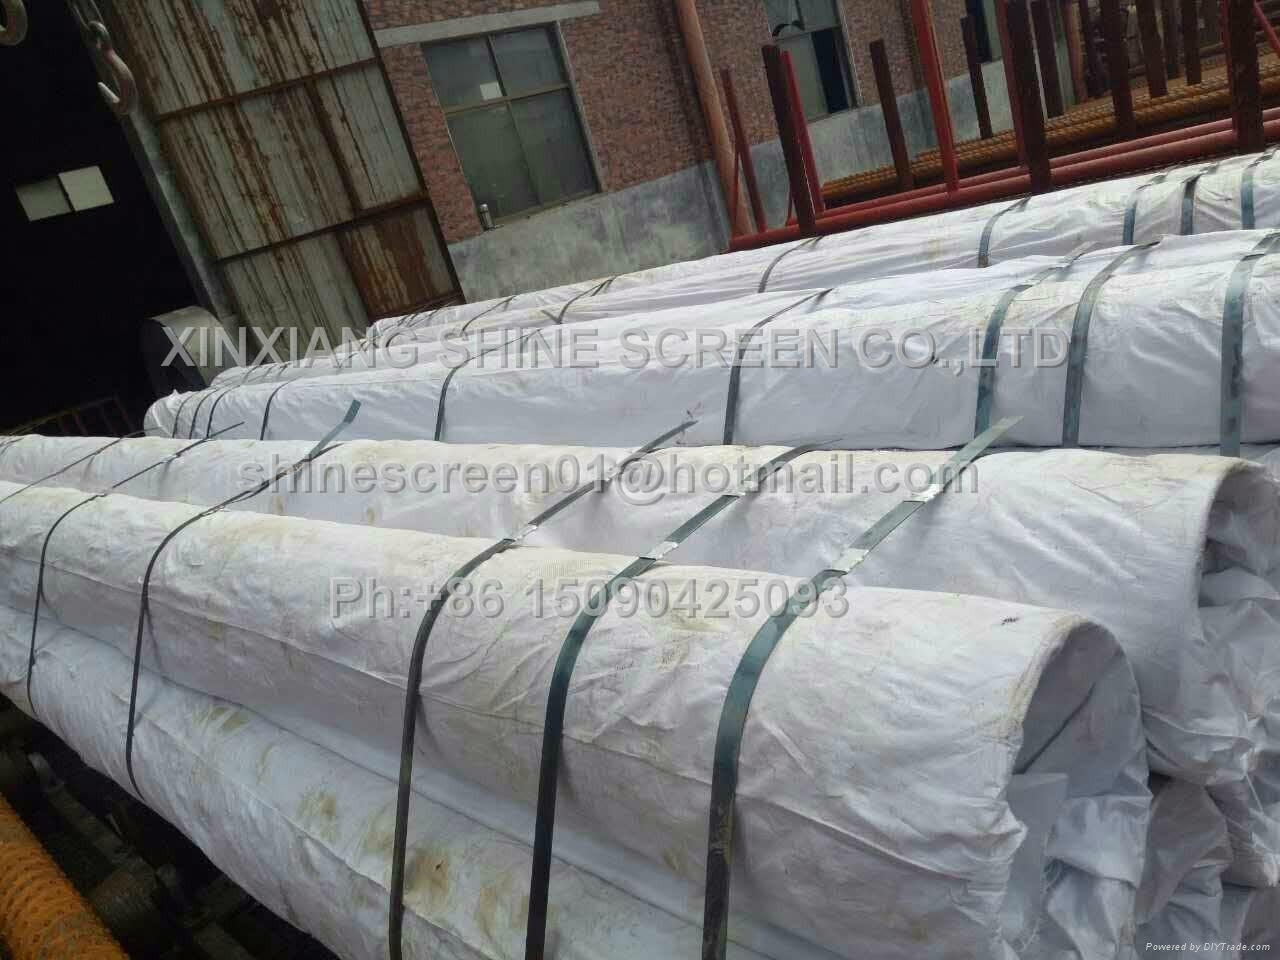 Wedge wire welded screen as So  ent filter element 5